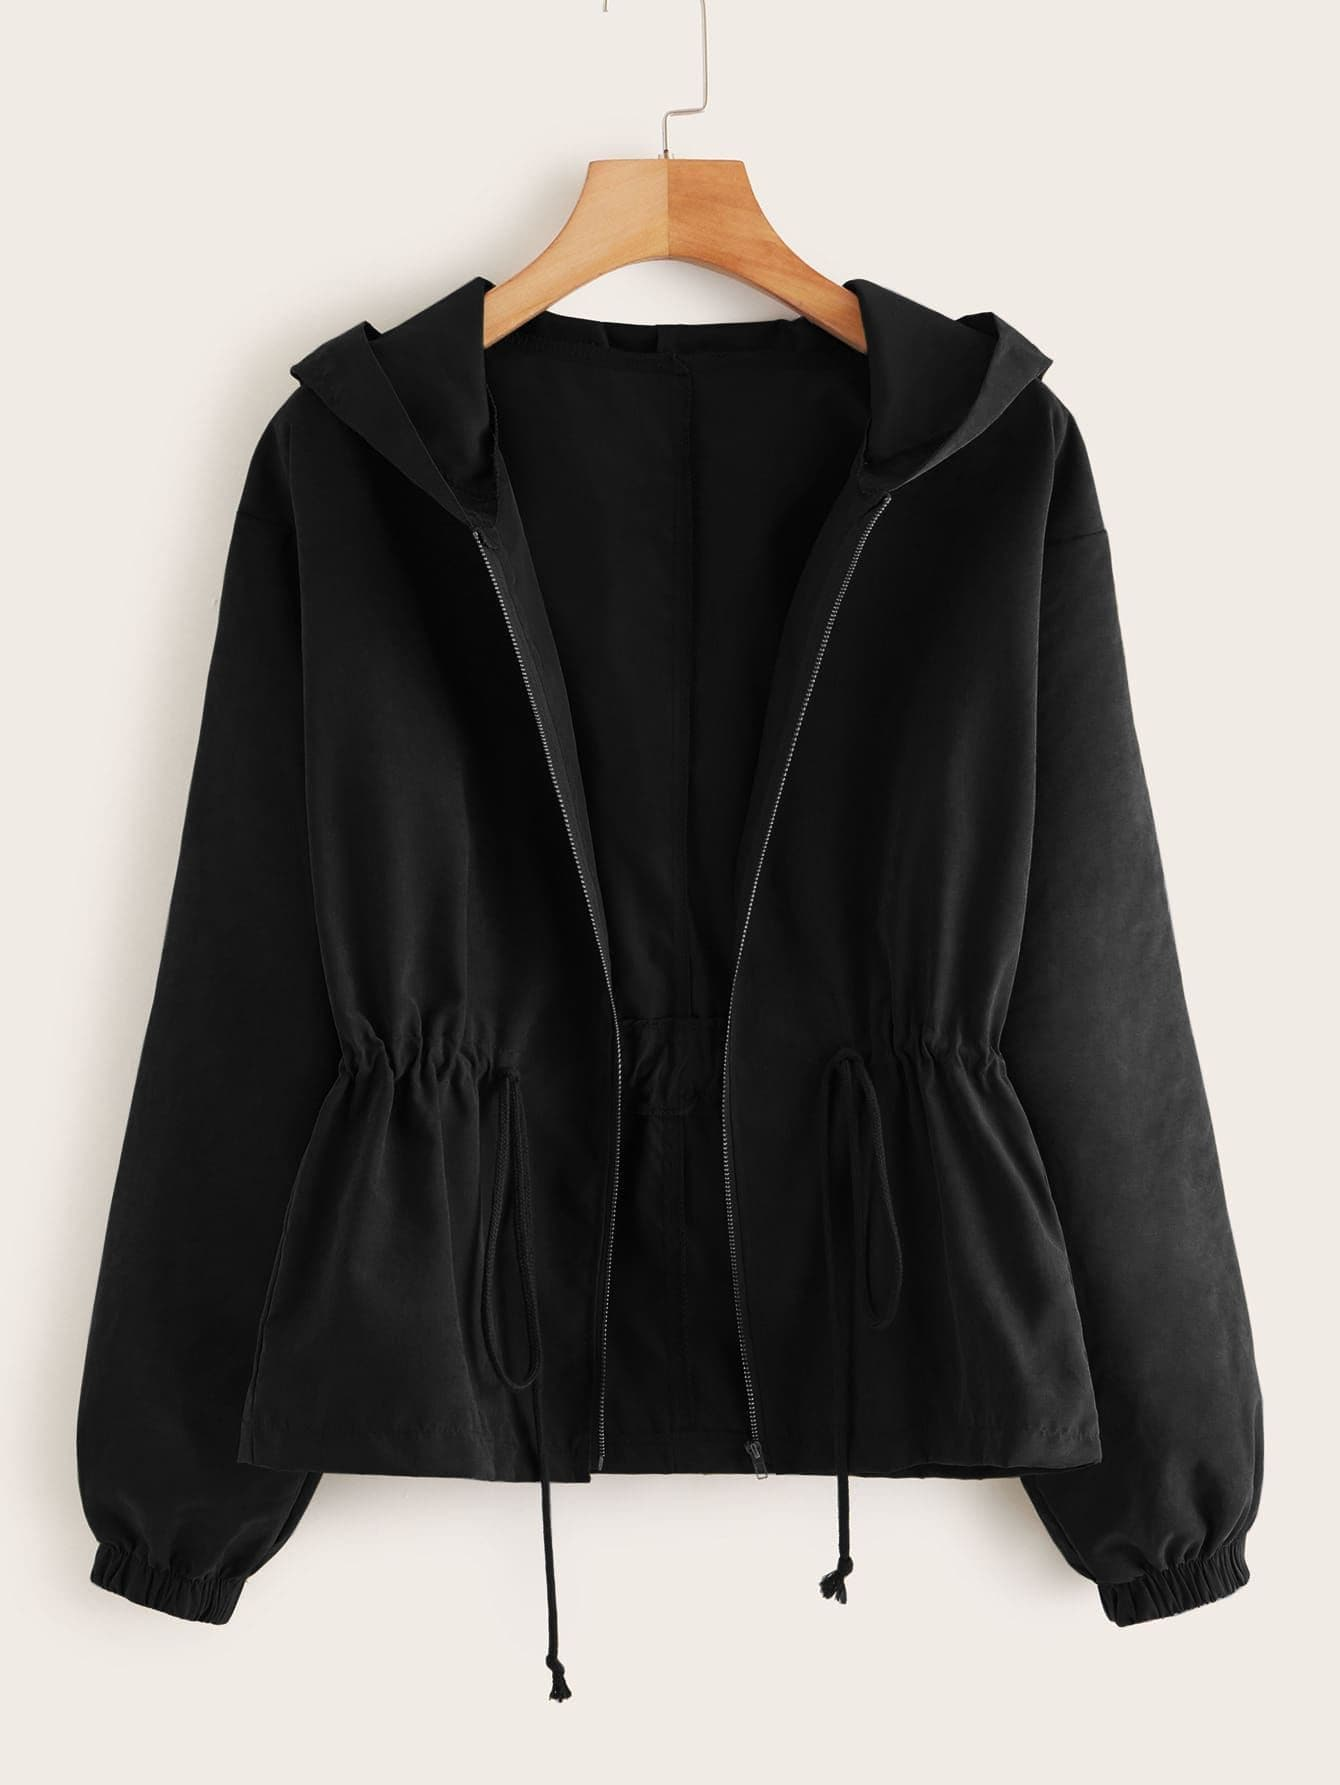 Plus Zip Up Drawstring Hooded Coat - FLJ CORPORATIONS